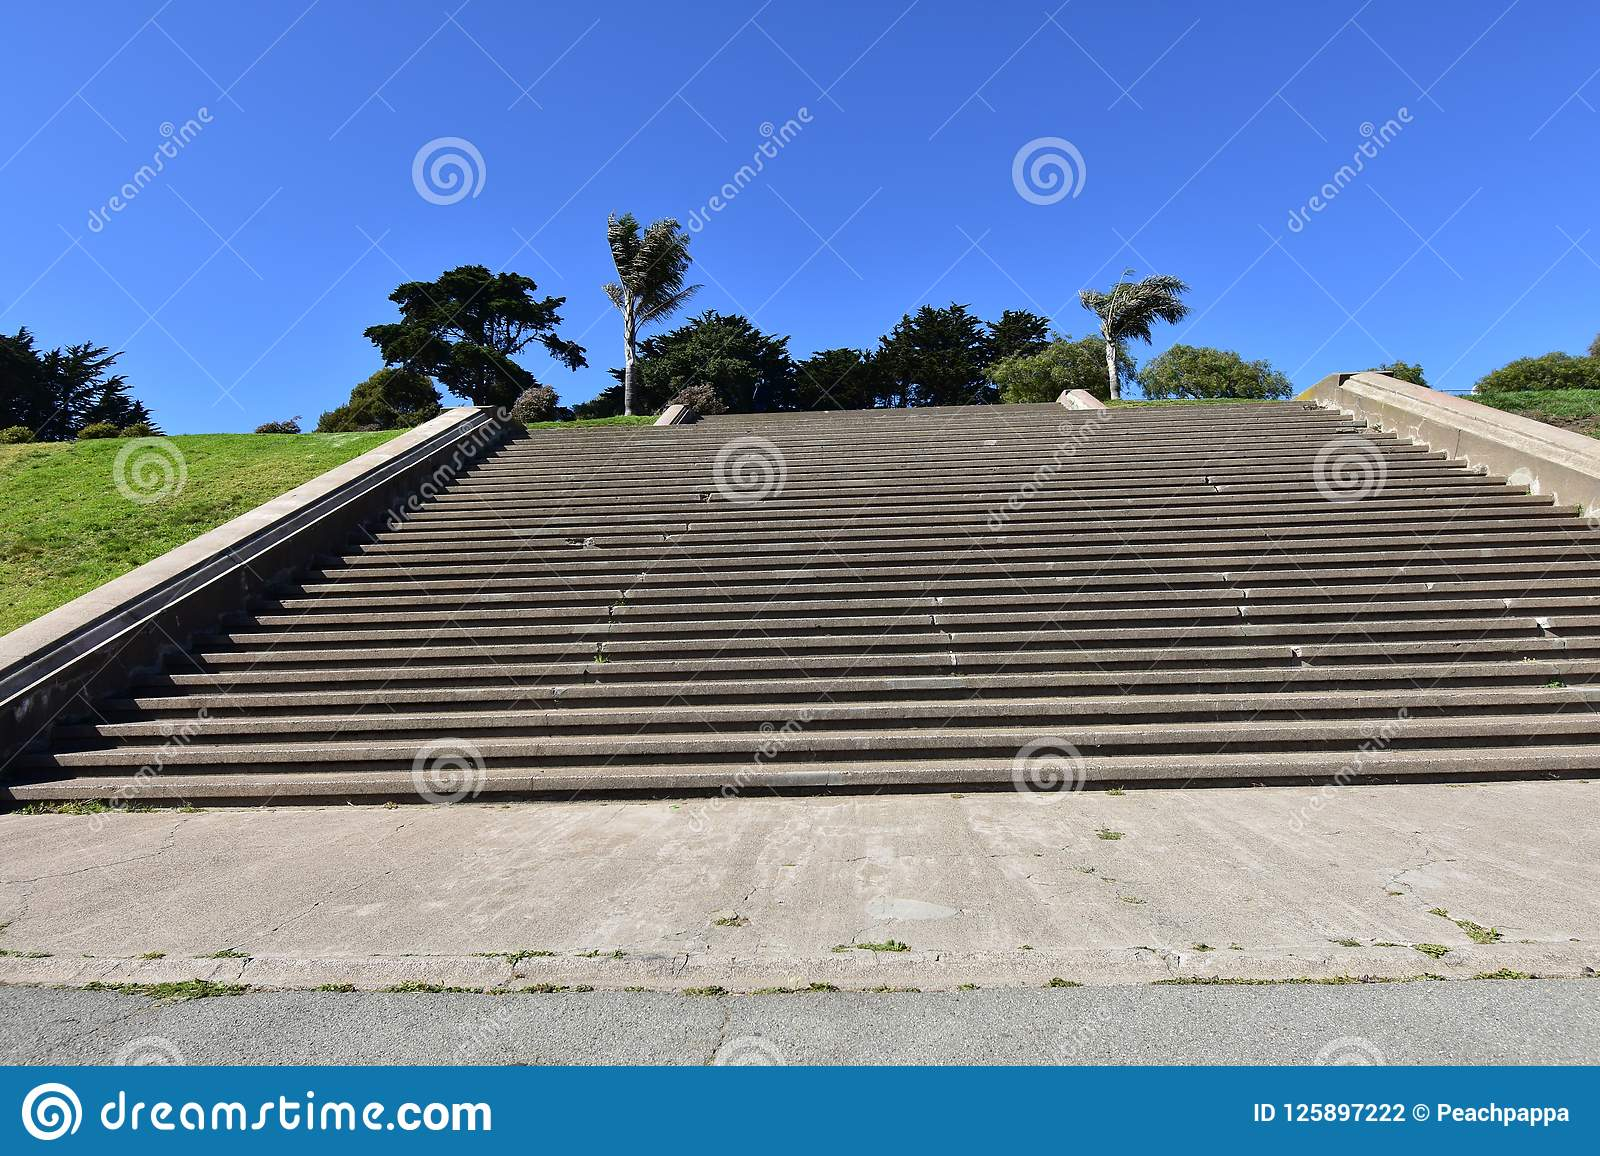 The movie damaged steps of Alta Plaza Park, 2.